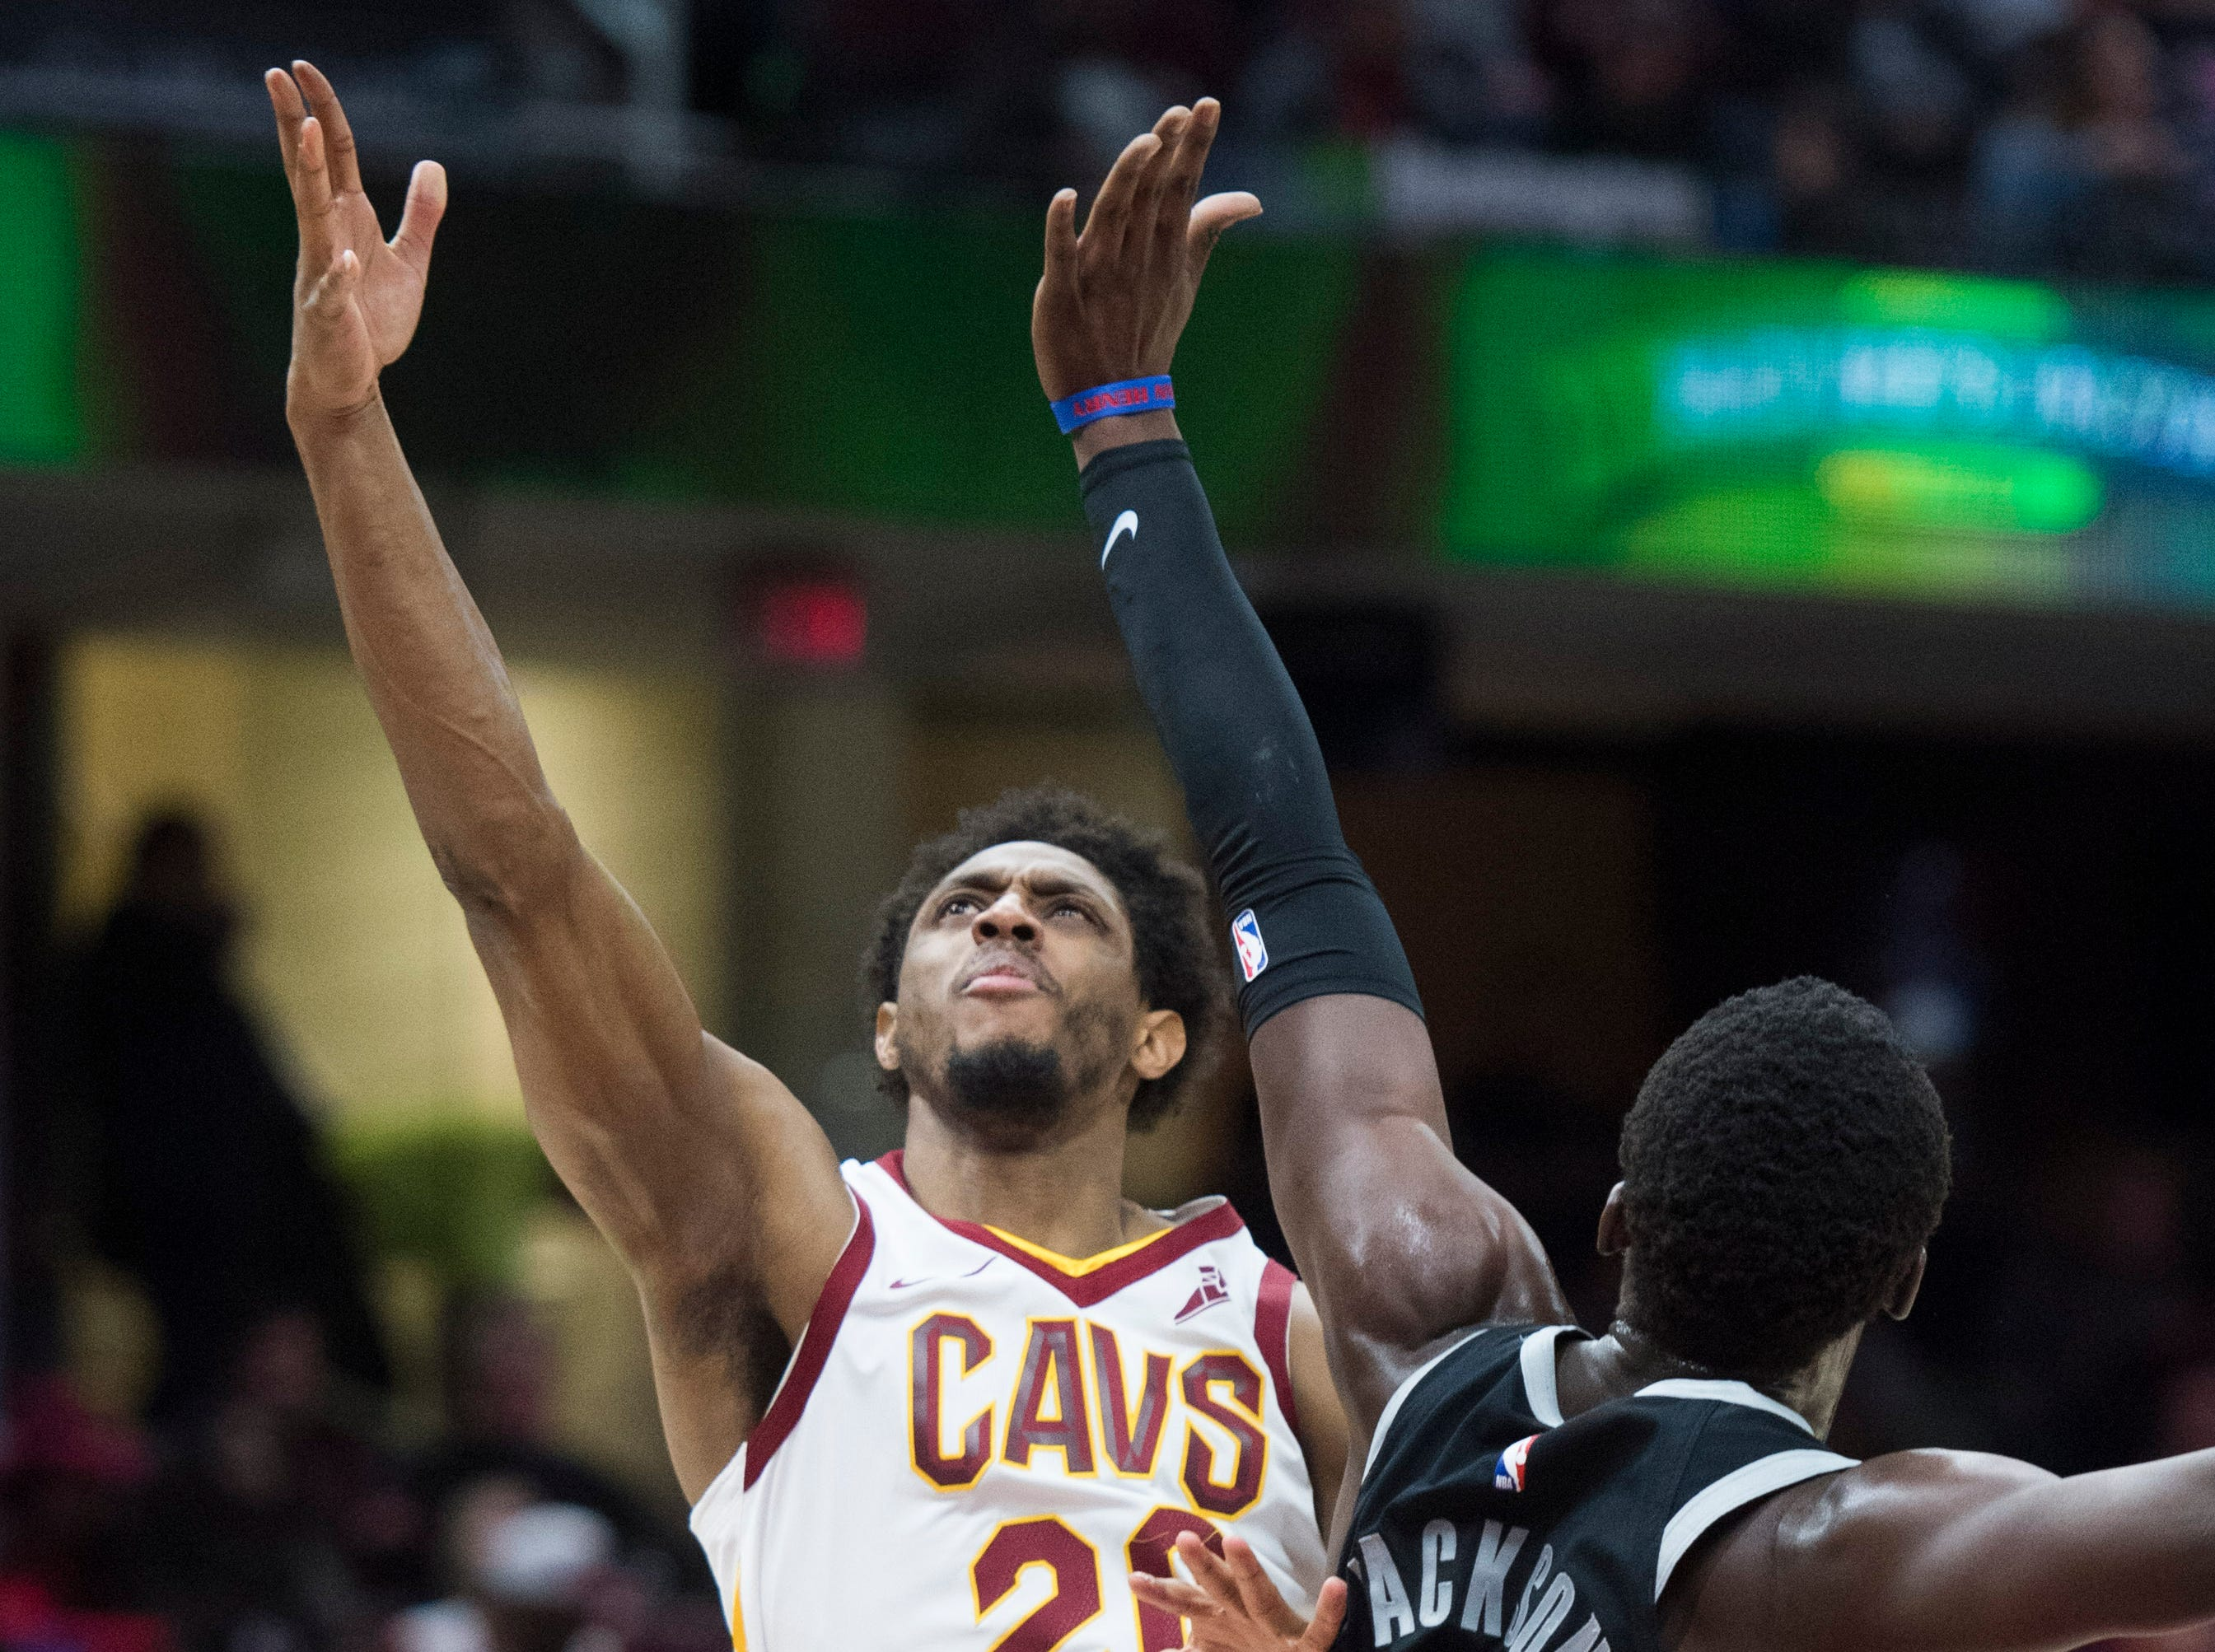 Cleveland Cavaliers' guard Brandon Knight drives to the basket against Detroit Pistons' guard Reggie Jackson, from Italy, in the first half of an NBA basketball game,